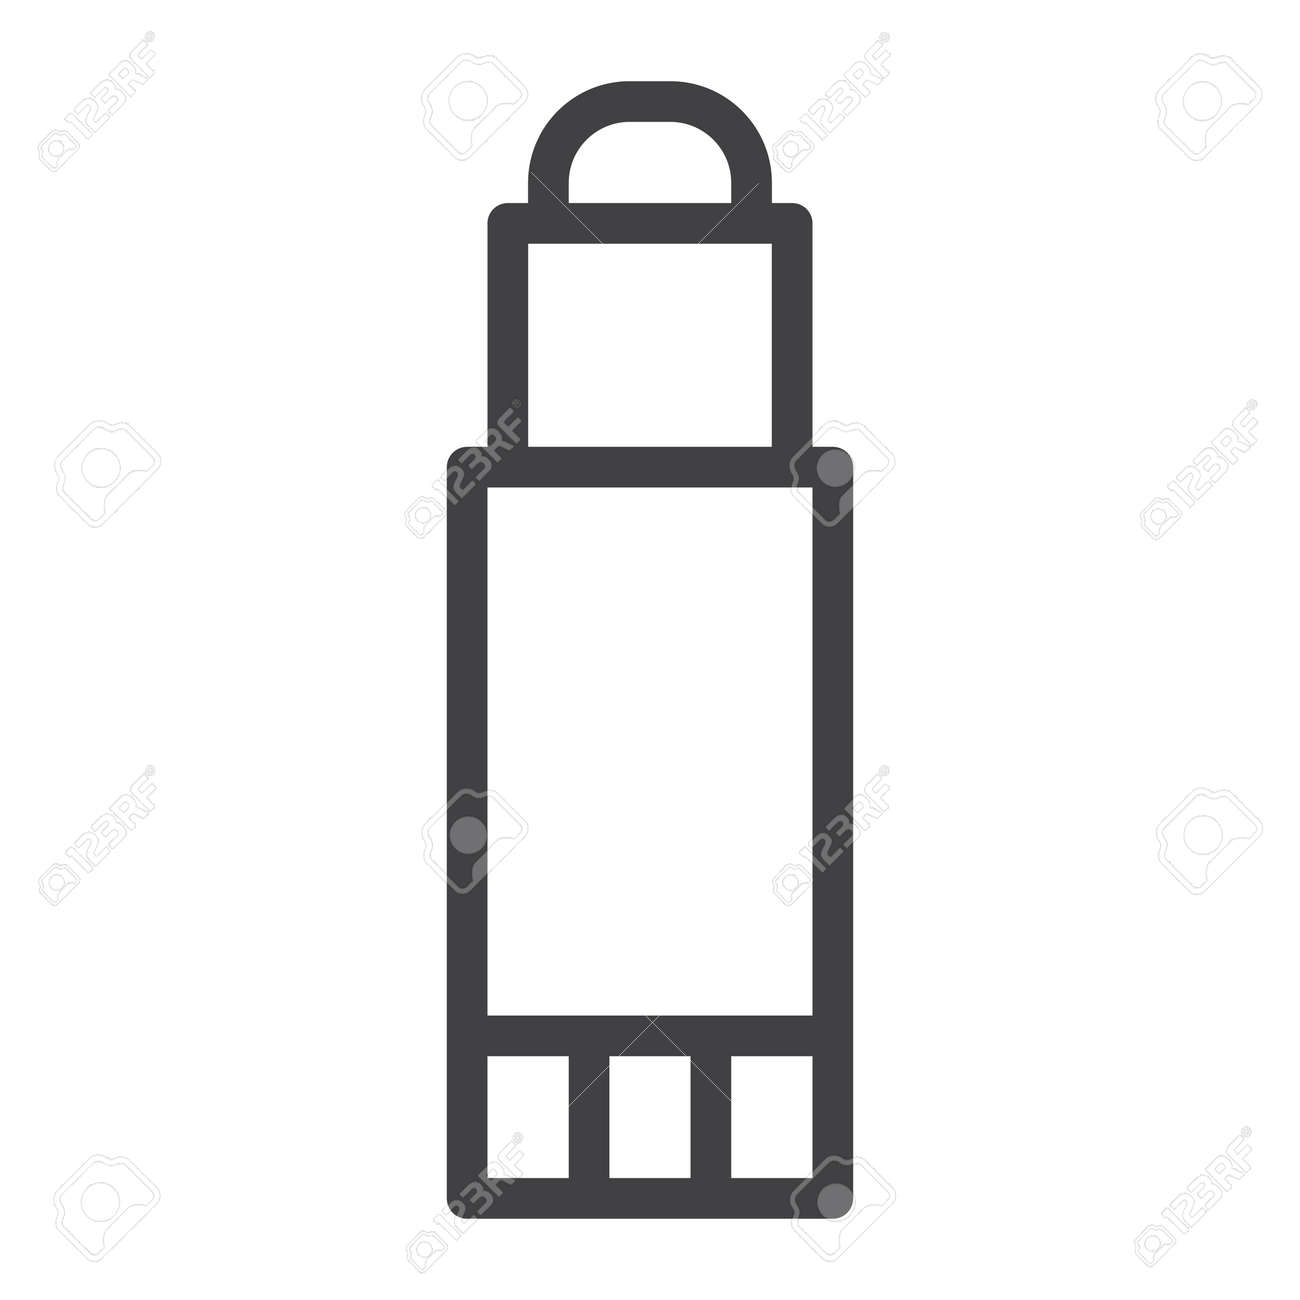 glue stick line icon. royalty free cliparts, vectors, and stock